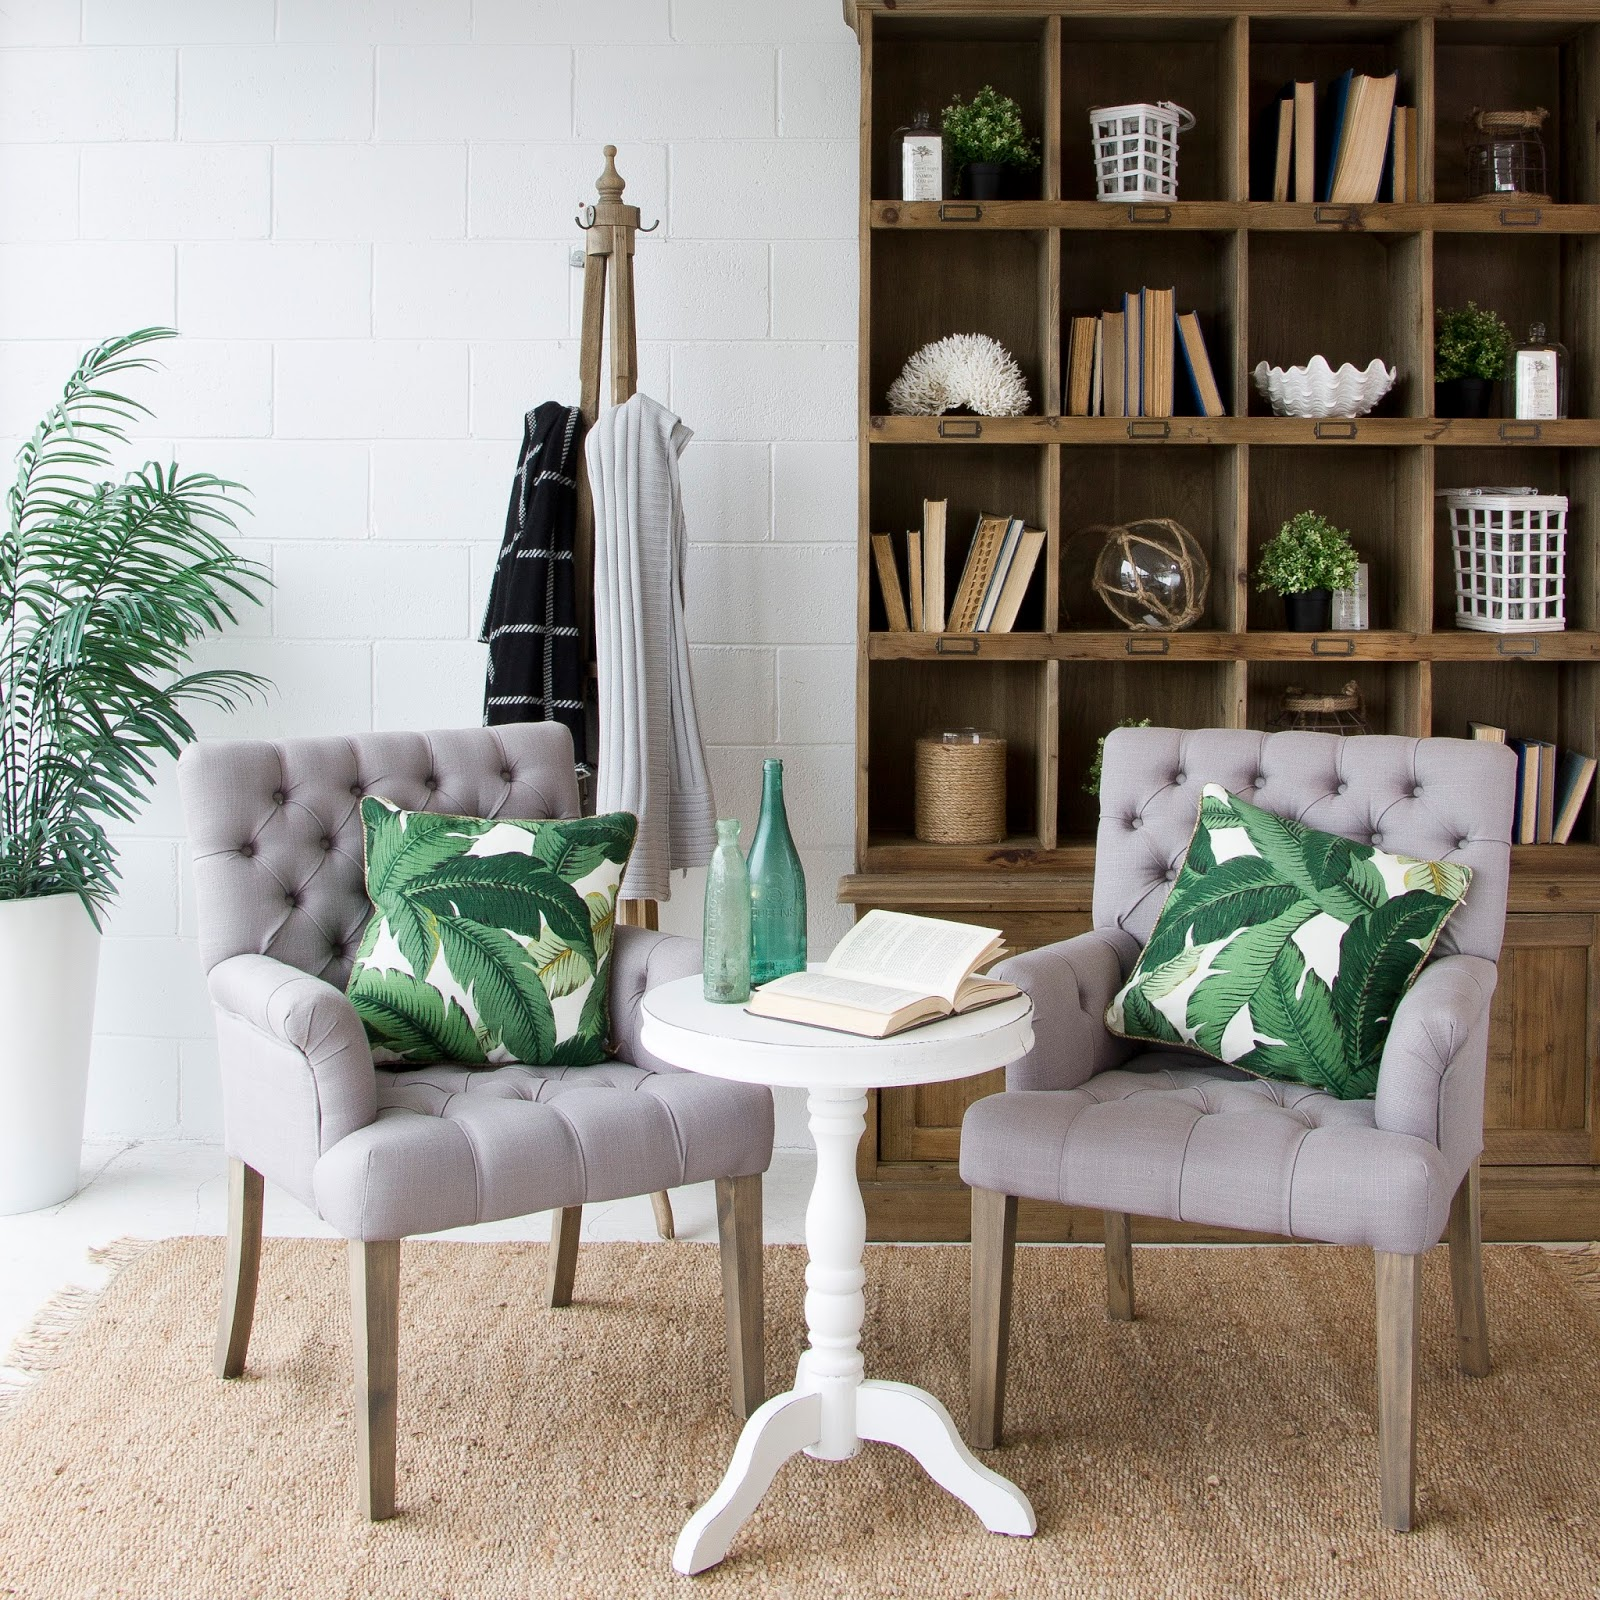 botanical pillows on chairs